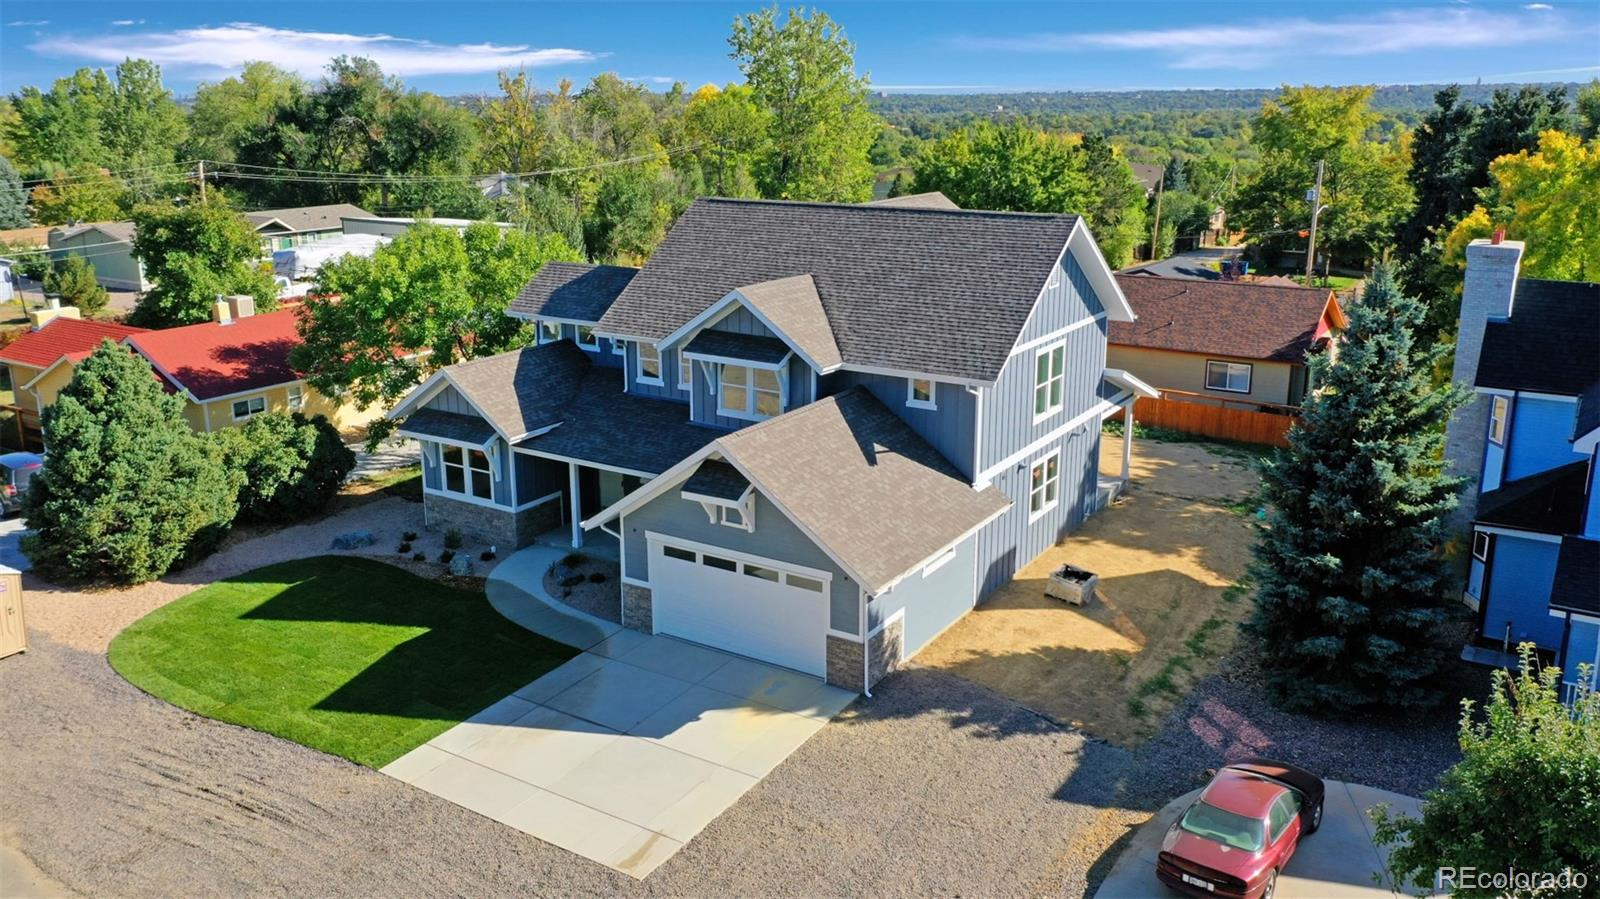 MLS# 6218447 - 3 - 9080 W 64th Place, Arvada, CO 80004